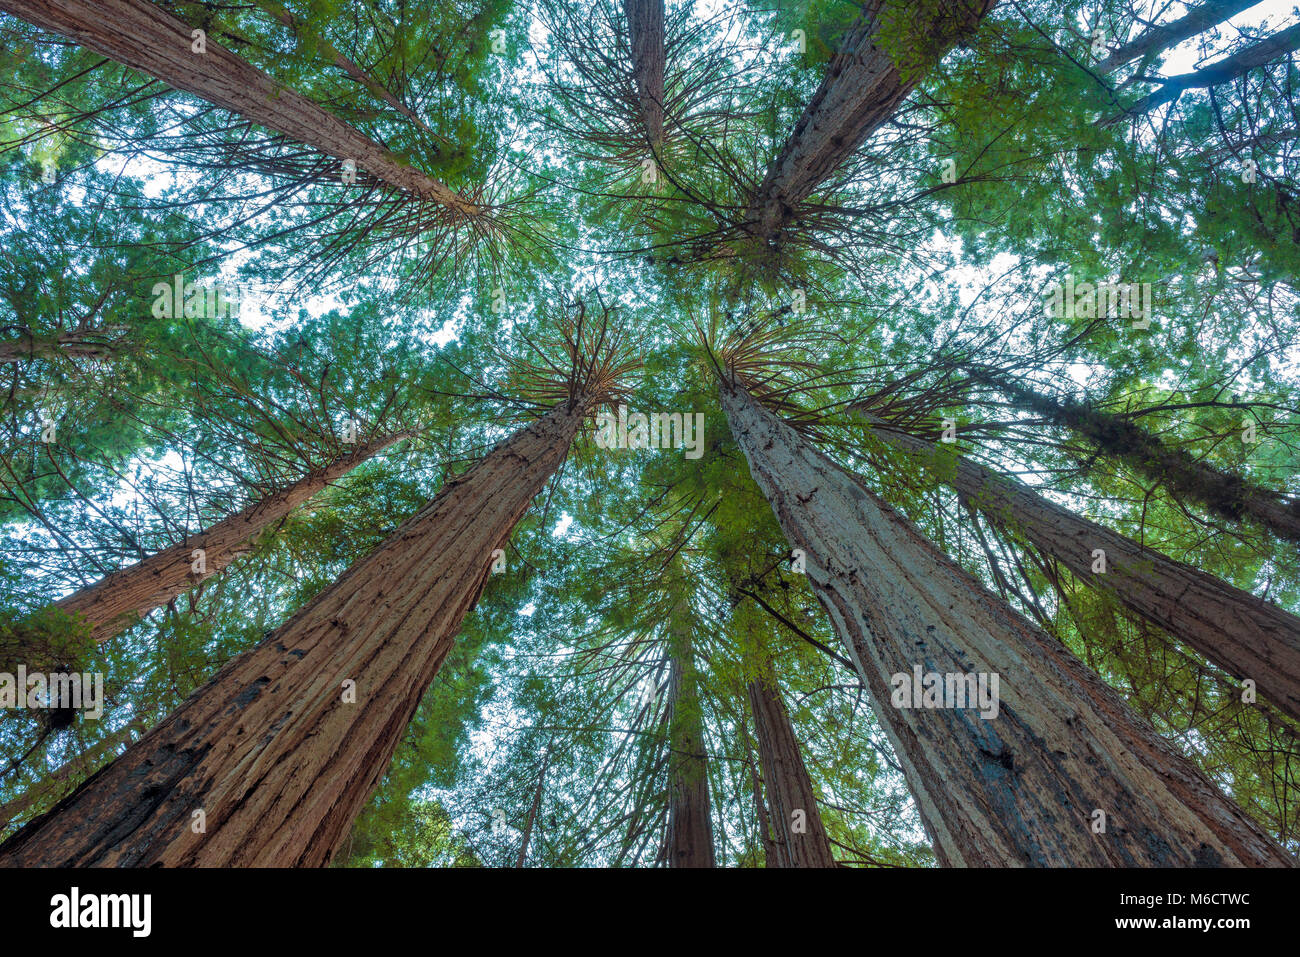 Anello della cattedrale, Redwoods, Sequoia sempervirens, Muir Woods National Monument, Marin County, California Immagini Stock